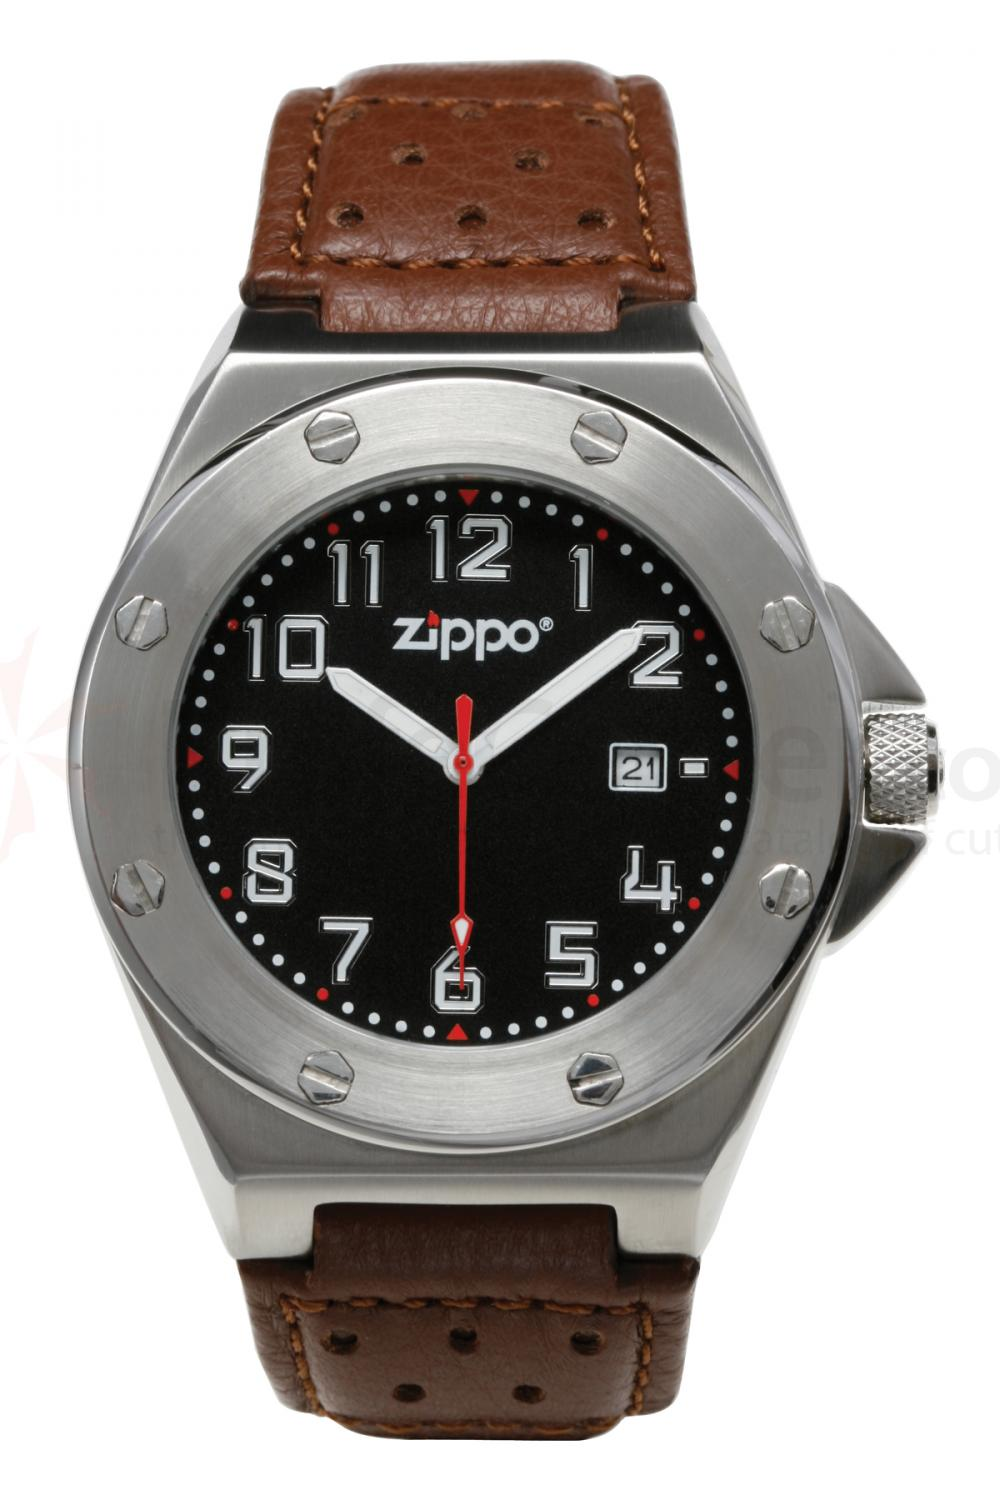 Zippo Watch Black Face / Brown Leather Band